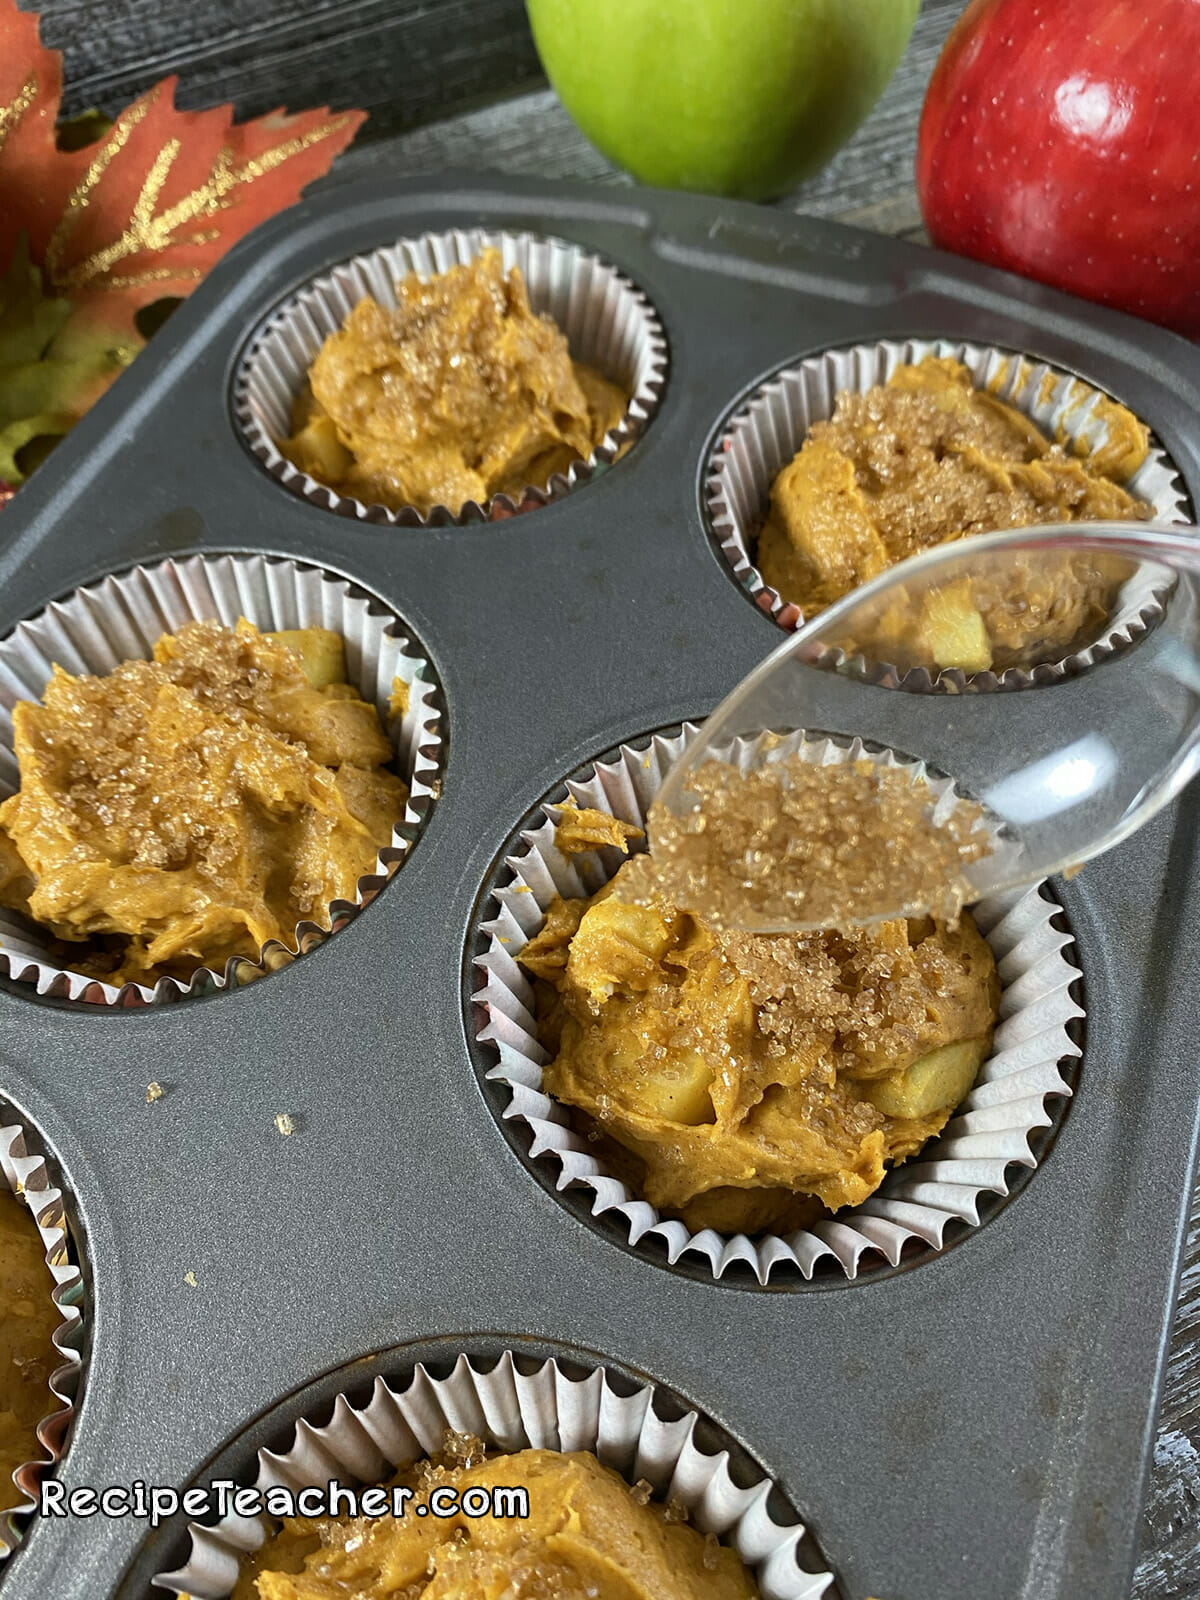 Recipe for pumpkin spice and apple muffins